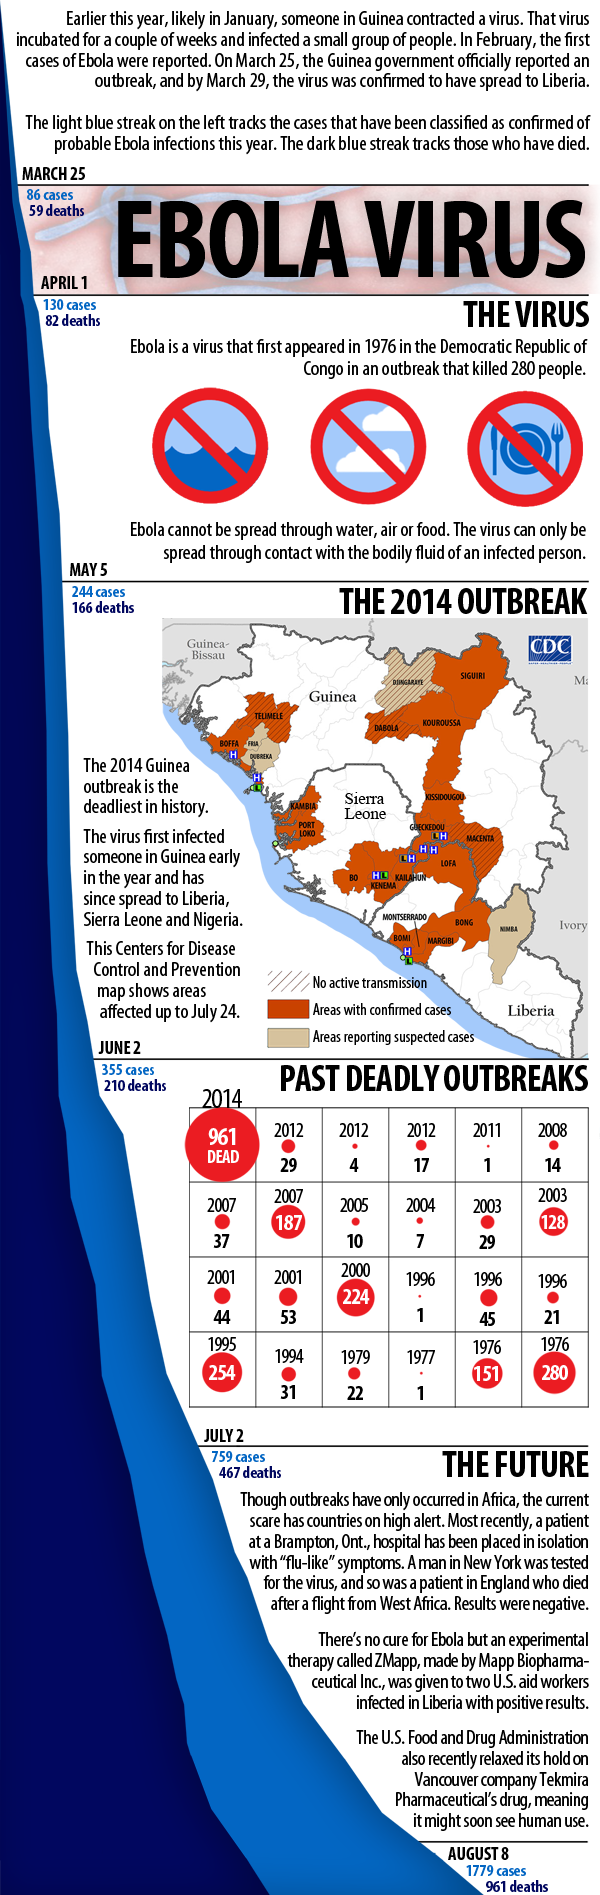 Ebola Infographic Update August 8